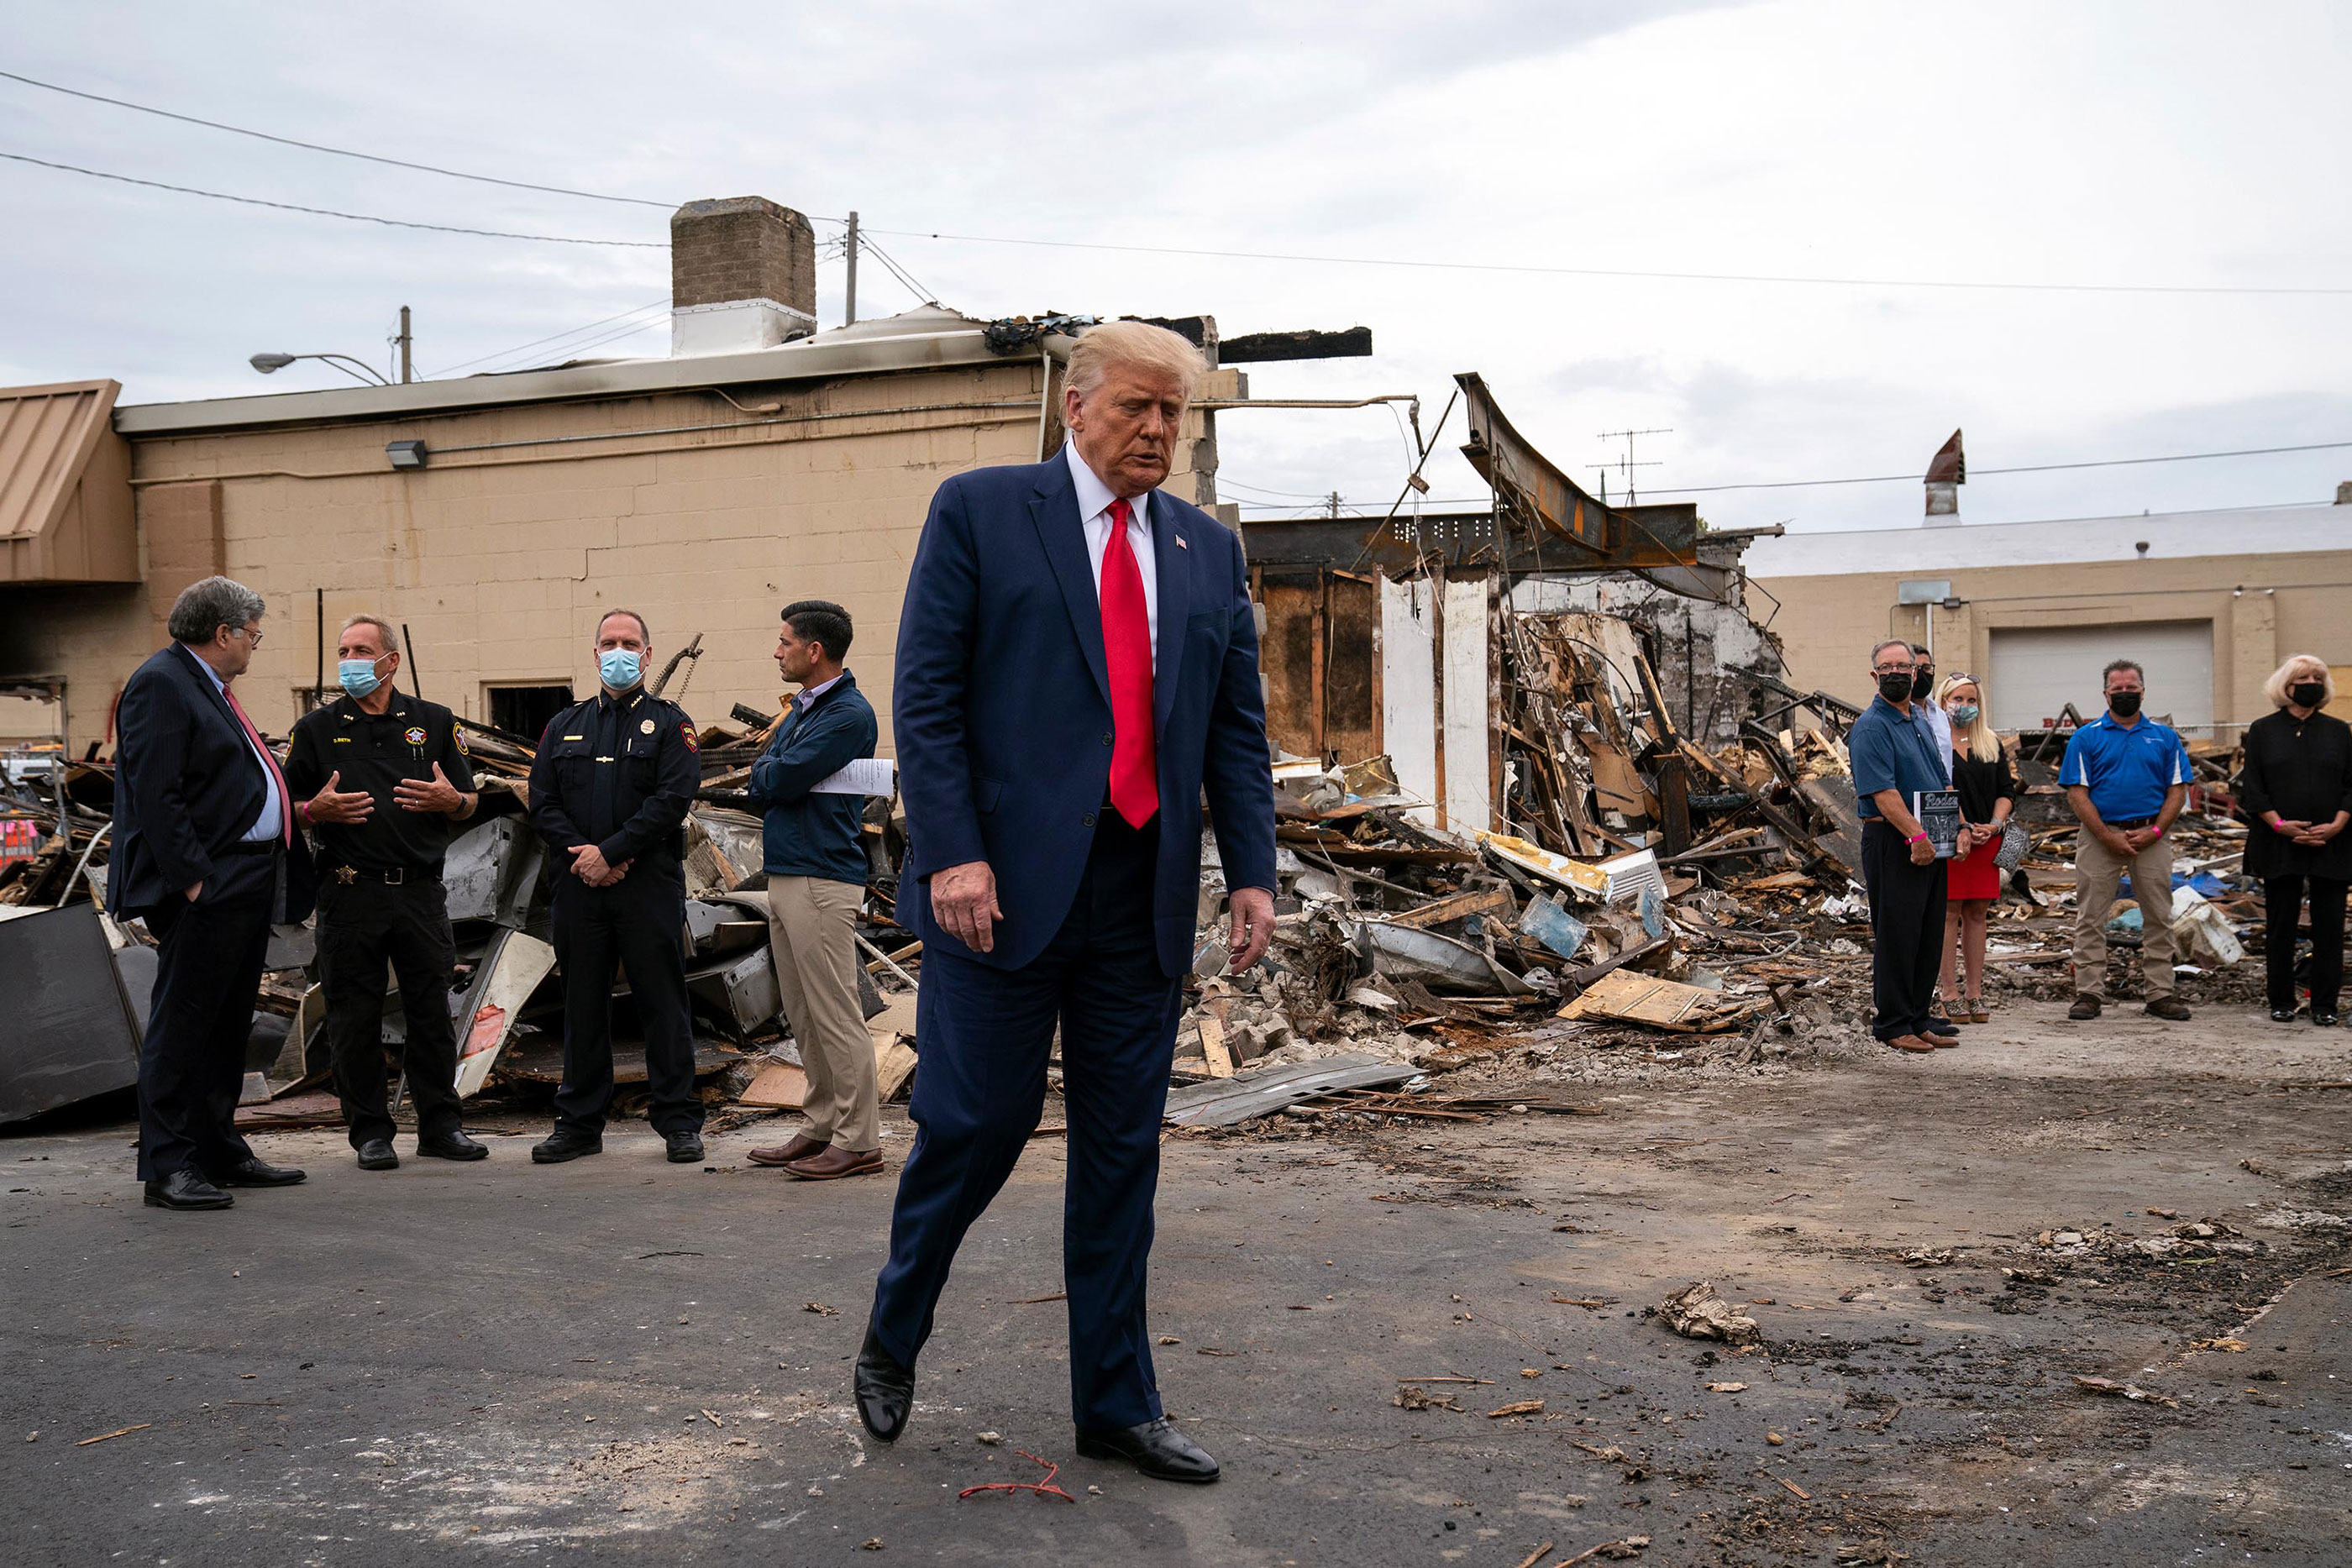 President Donald Trump tours an area on September 1 that was damaged during demonstrations in Kenosha, Wisconsin.